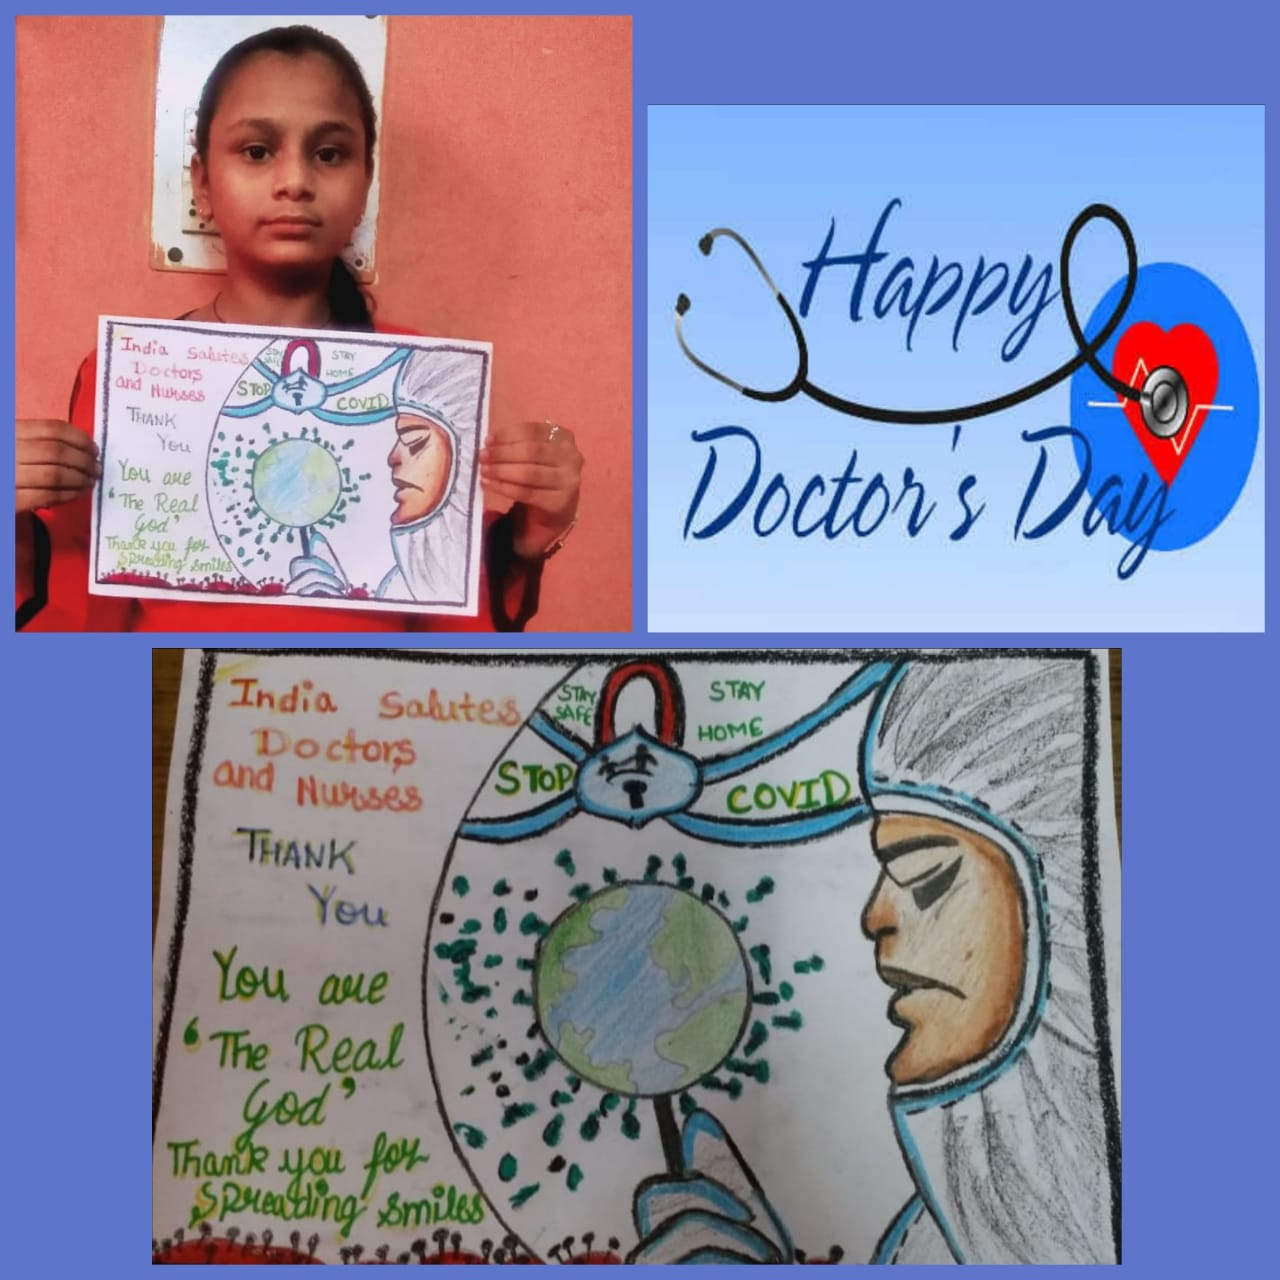 Doctor's Day celebration